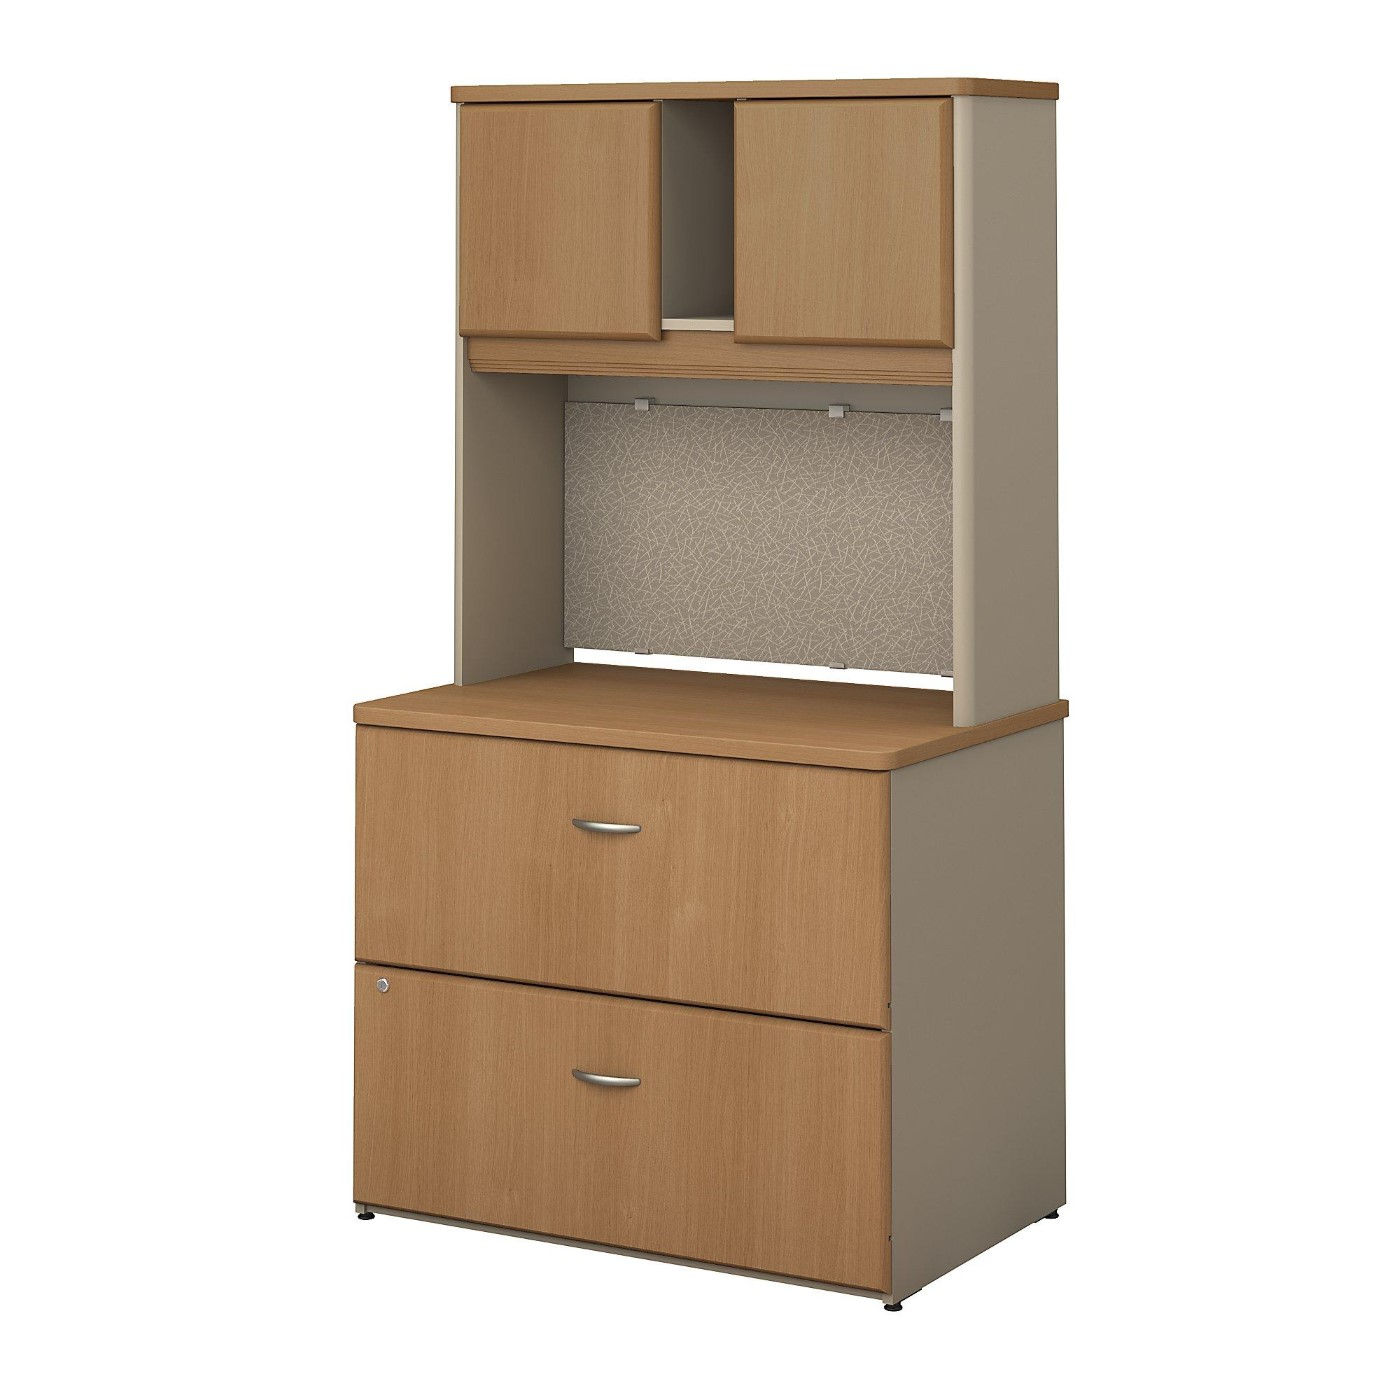 <font color=#c60><b>BUSH BUSINESS FURNITURE SERIES A 36W LATERAL FILE CABINET WITH HUTCH. FREE SHIPPING</font></b>